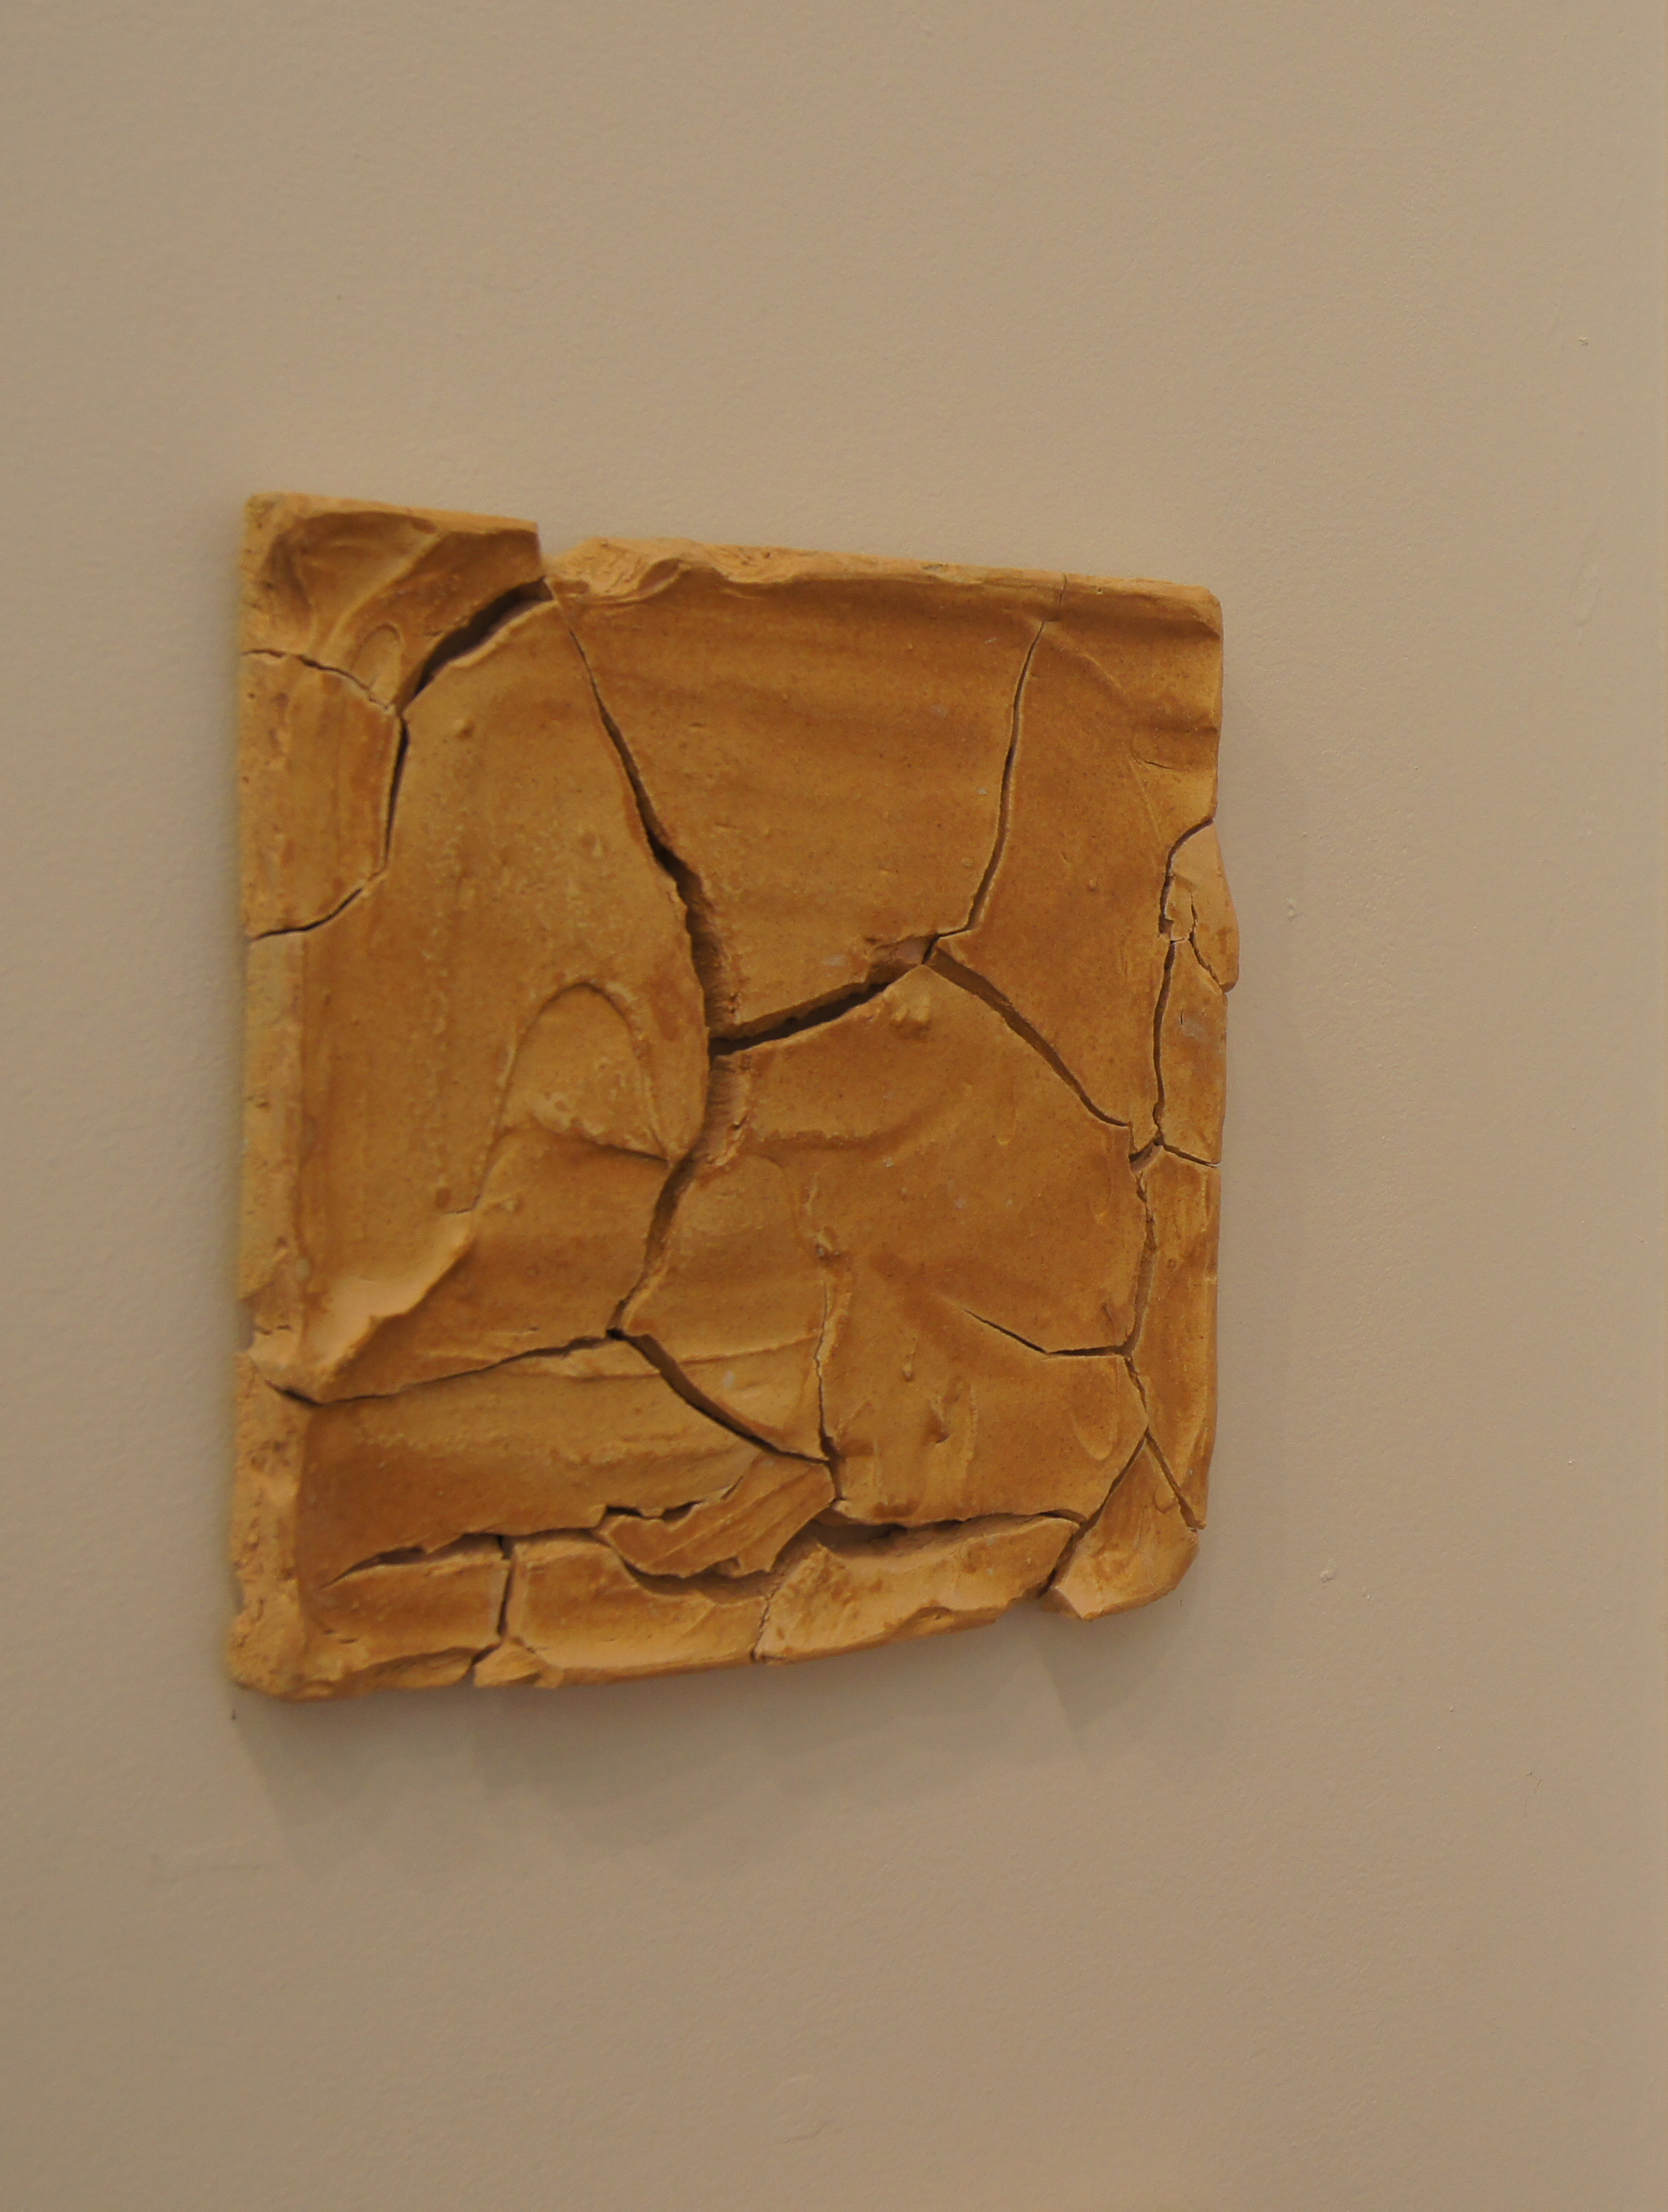 ASM_Jane Gordon_Parched Earth Wall Tiles II_11x11_Clay, terra sigellata, tile mastic, MDF, steel plate_200.png